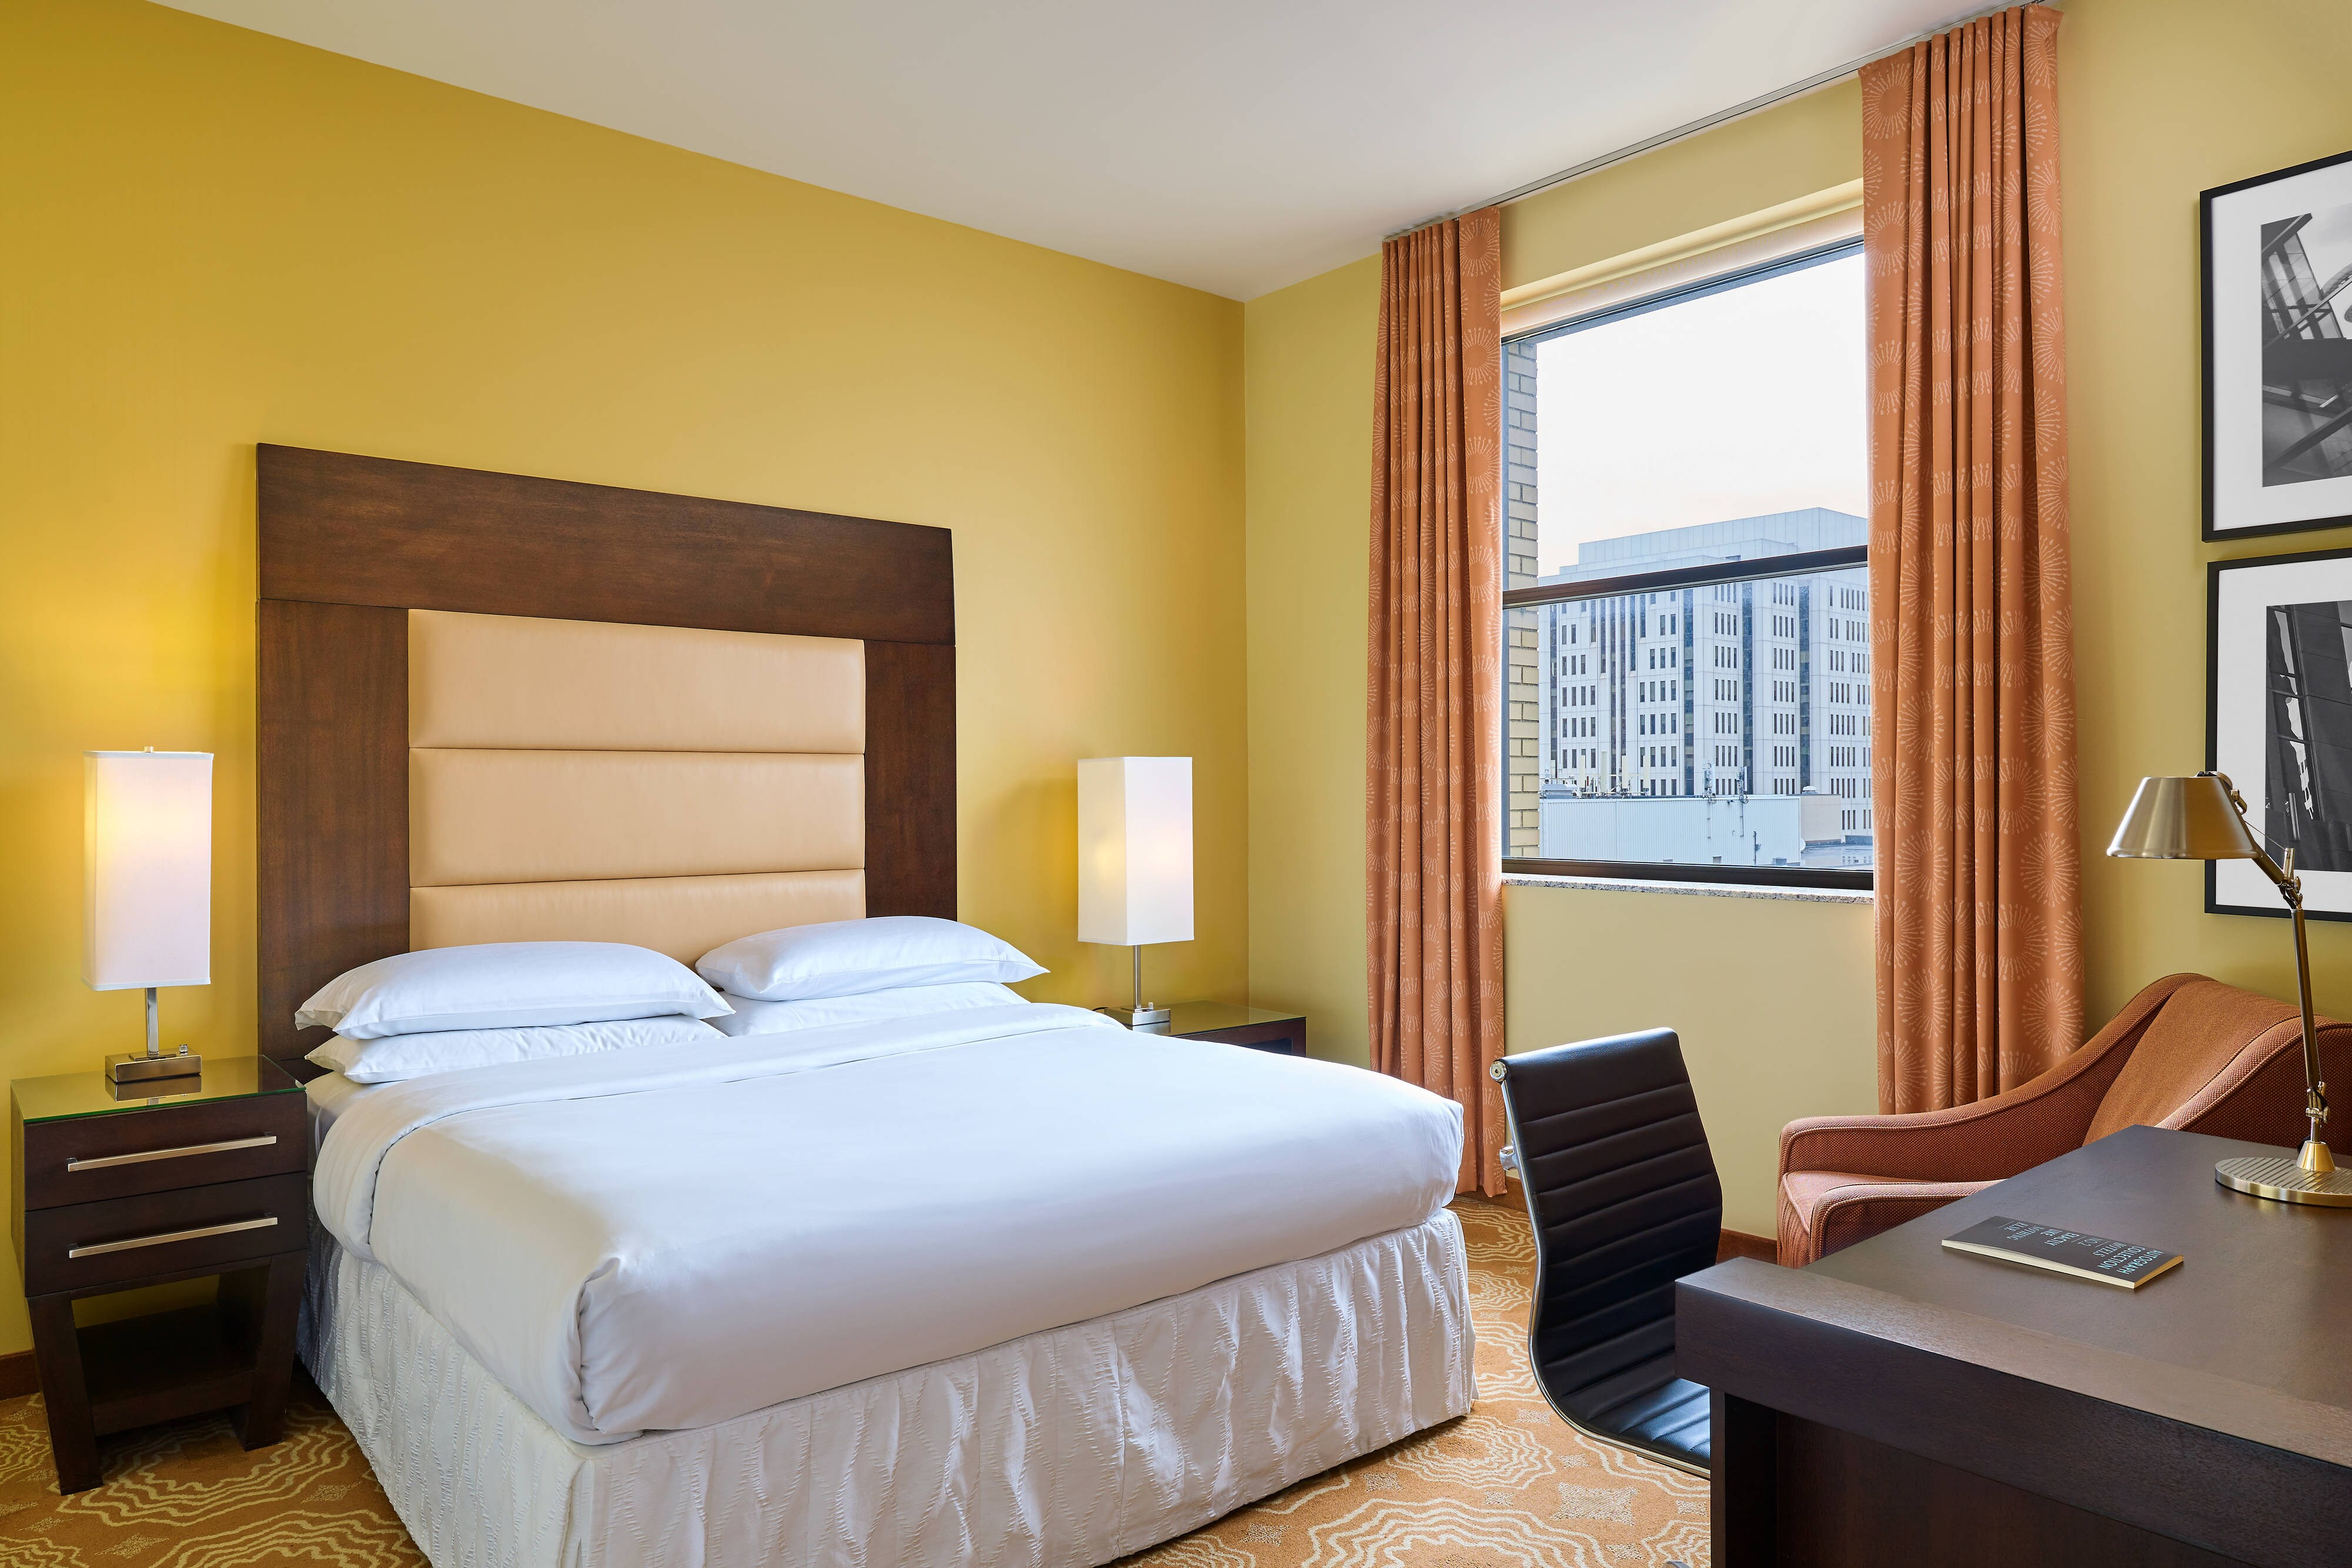 minneapolis guestroom hotels mspbr and room themed hotel hor travel burnsville inn guest suites fairfield mn rooms clsc